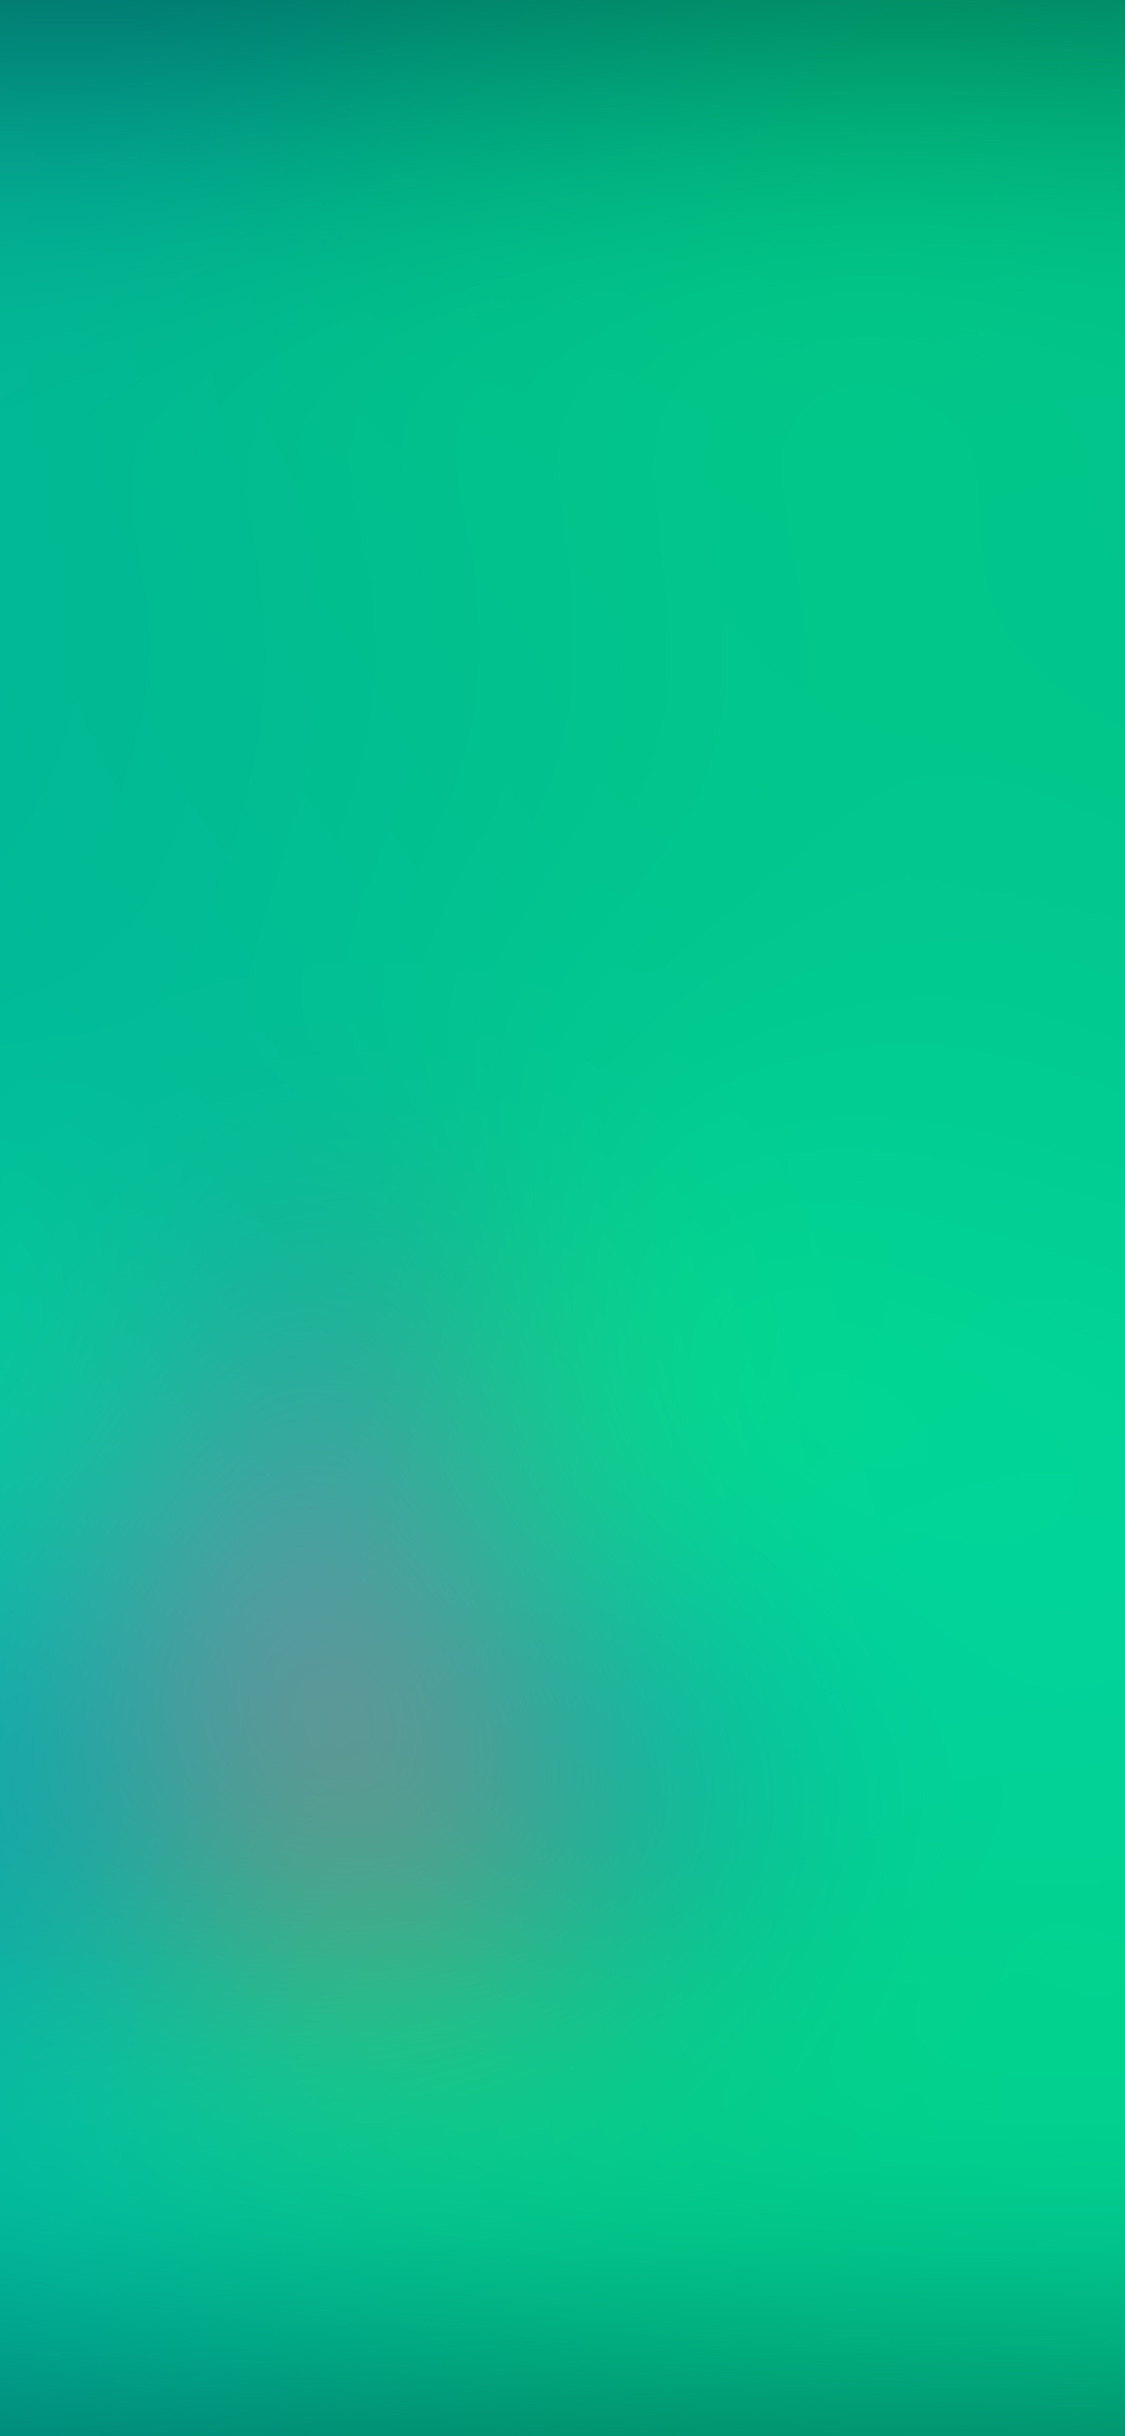 iPhoneXpapers.com-Apple-iPhone-wallpaper-sk29-emerald-green-blur-gradation